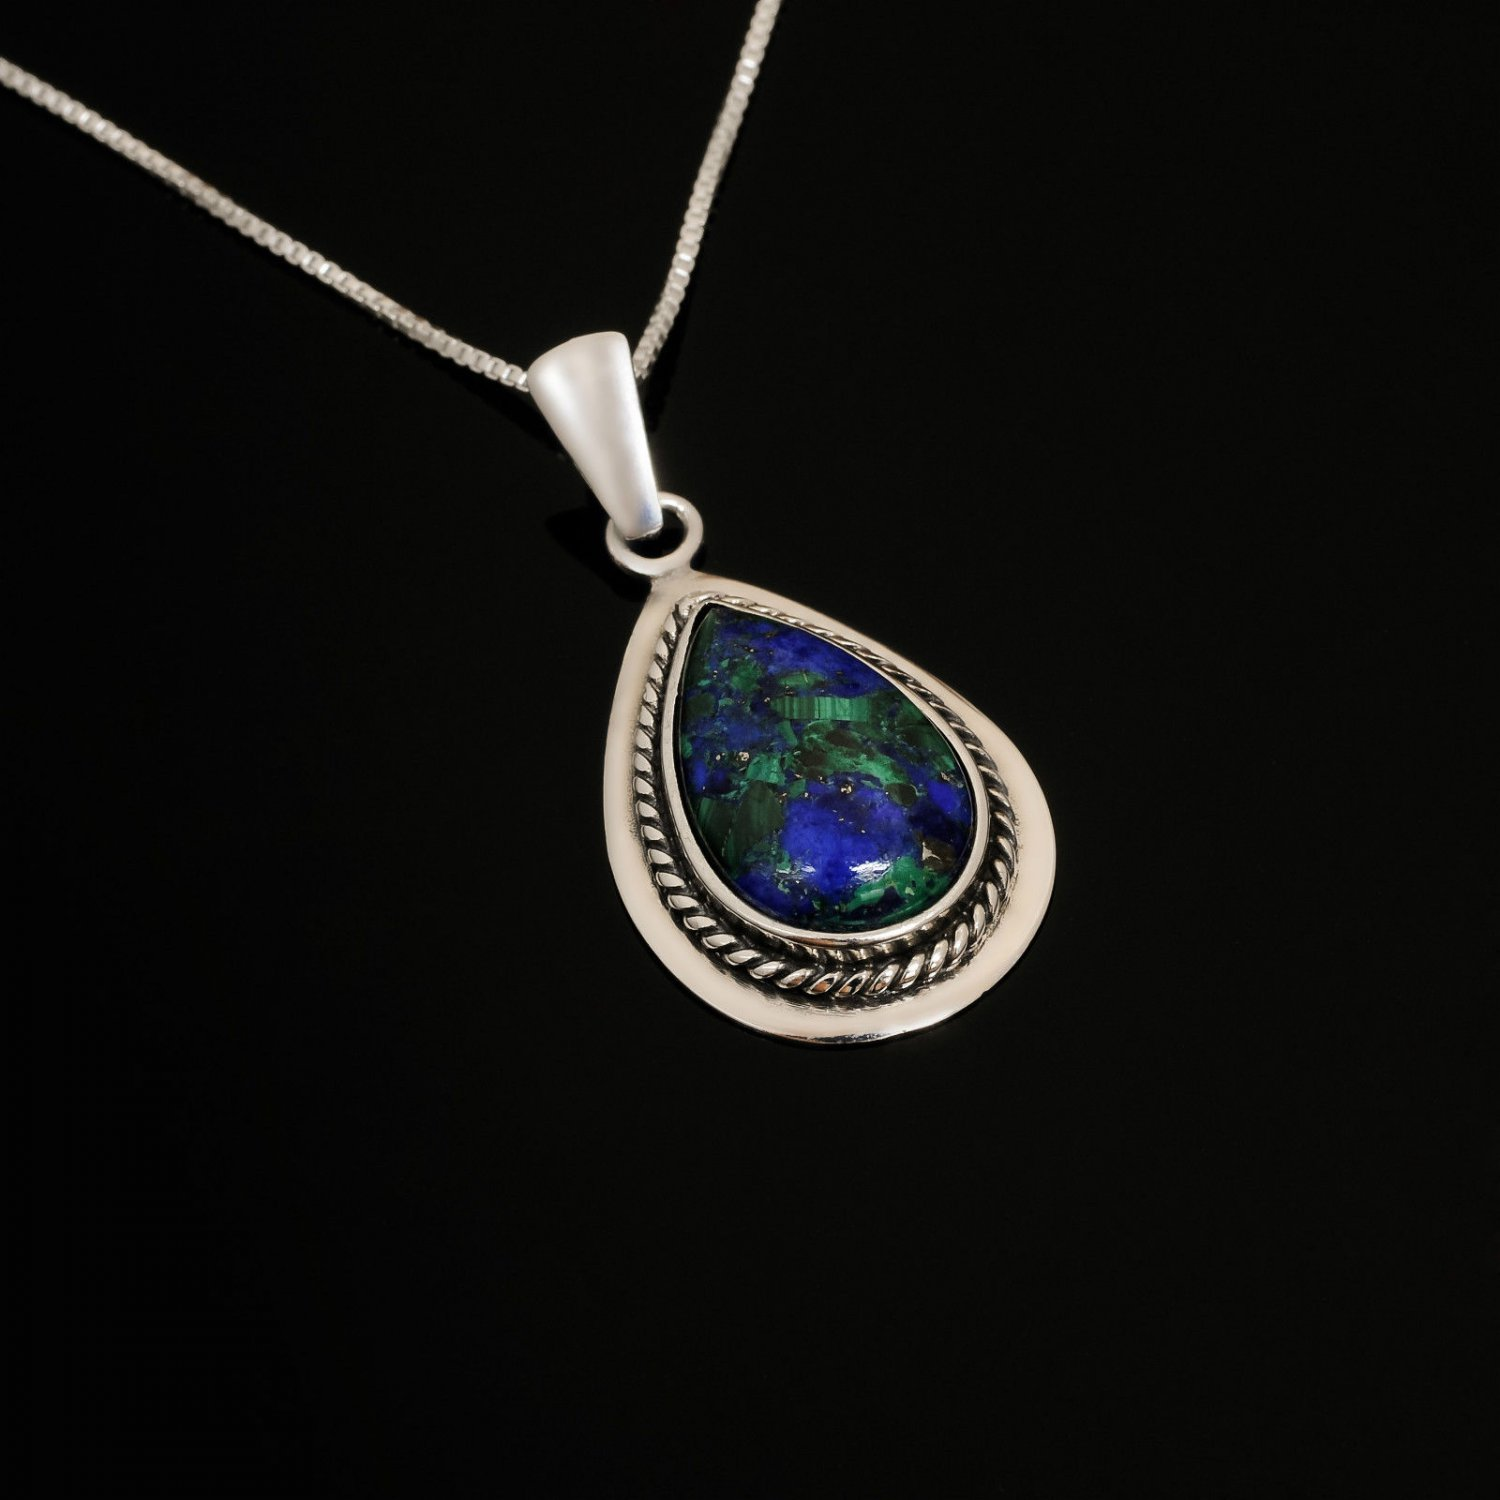 Fashion silver necklace & pendant natural Eilat stone Israel ! Gift & Jewelry